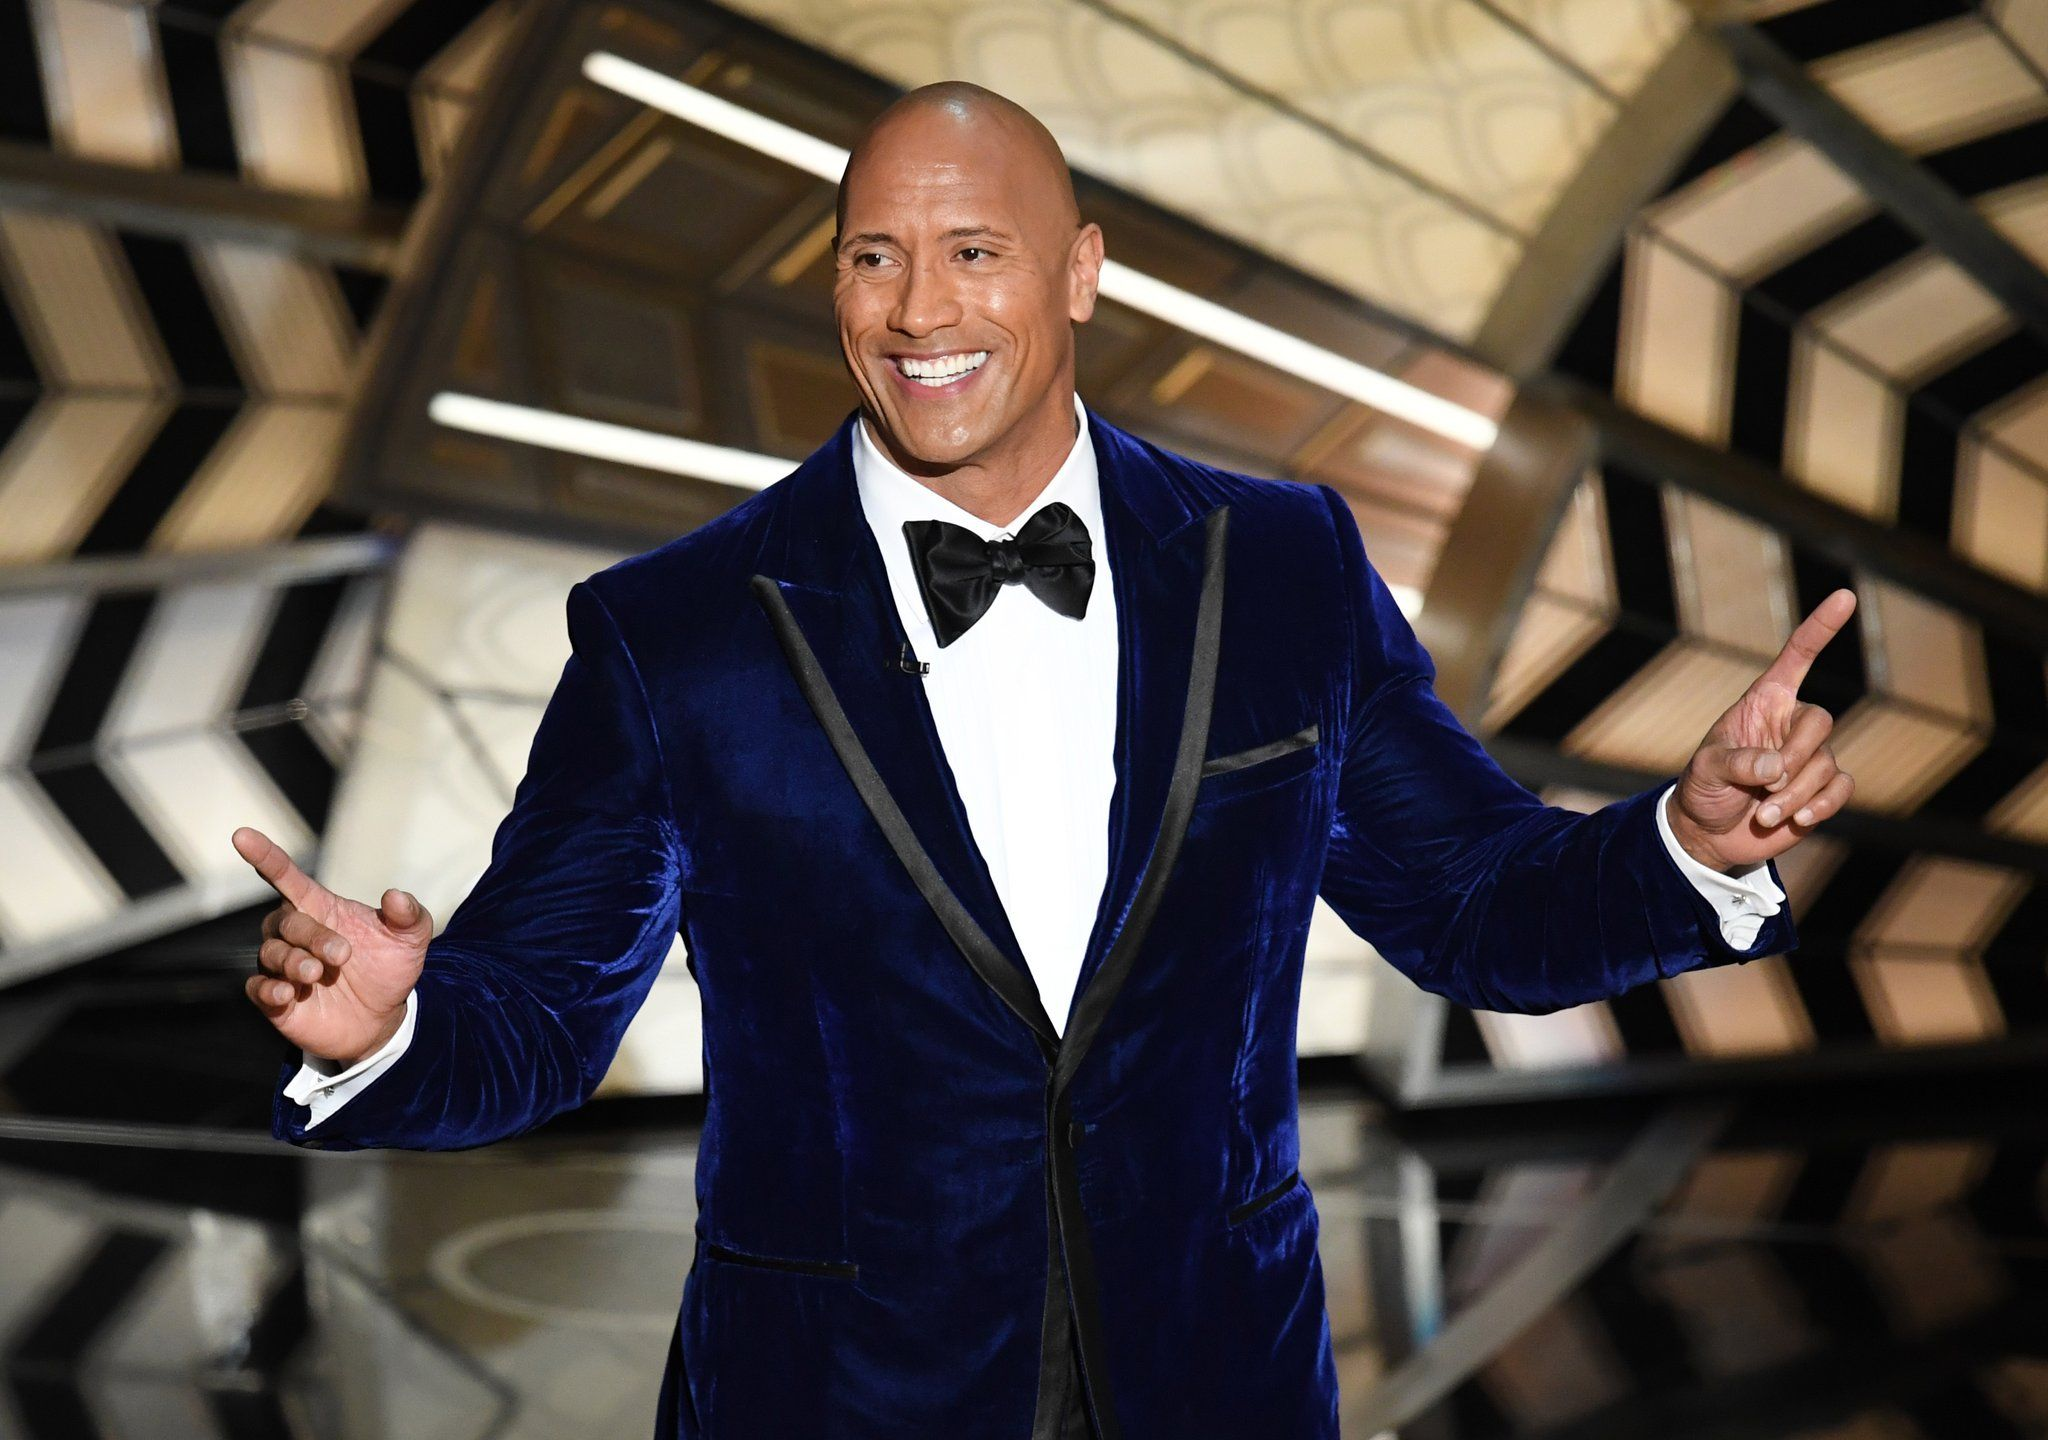 Dwayne Johnson Has Done More This Year Than Most of Us Do